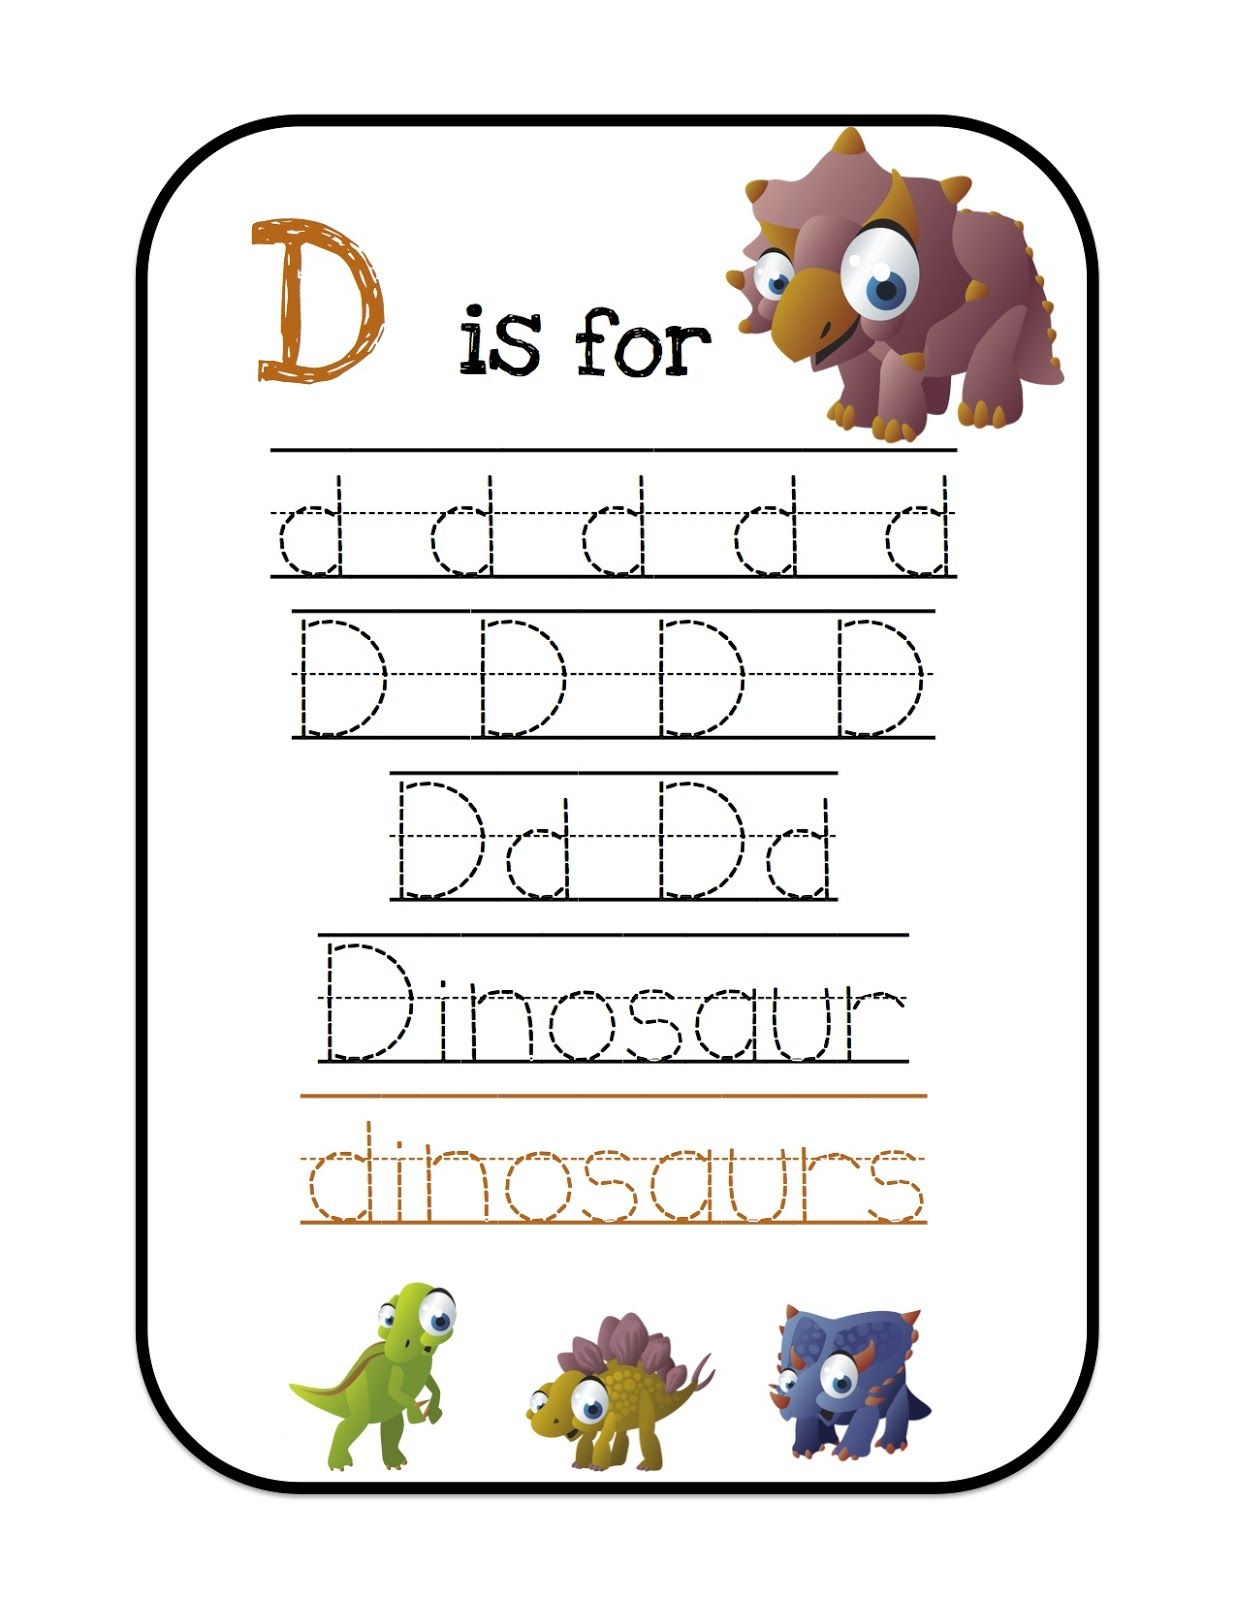 He Is Having Trouble With The Letter D But Loves Dinosaurs